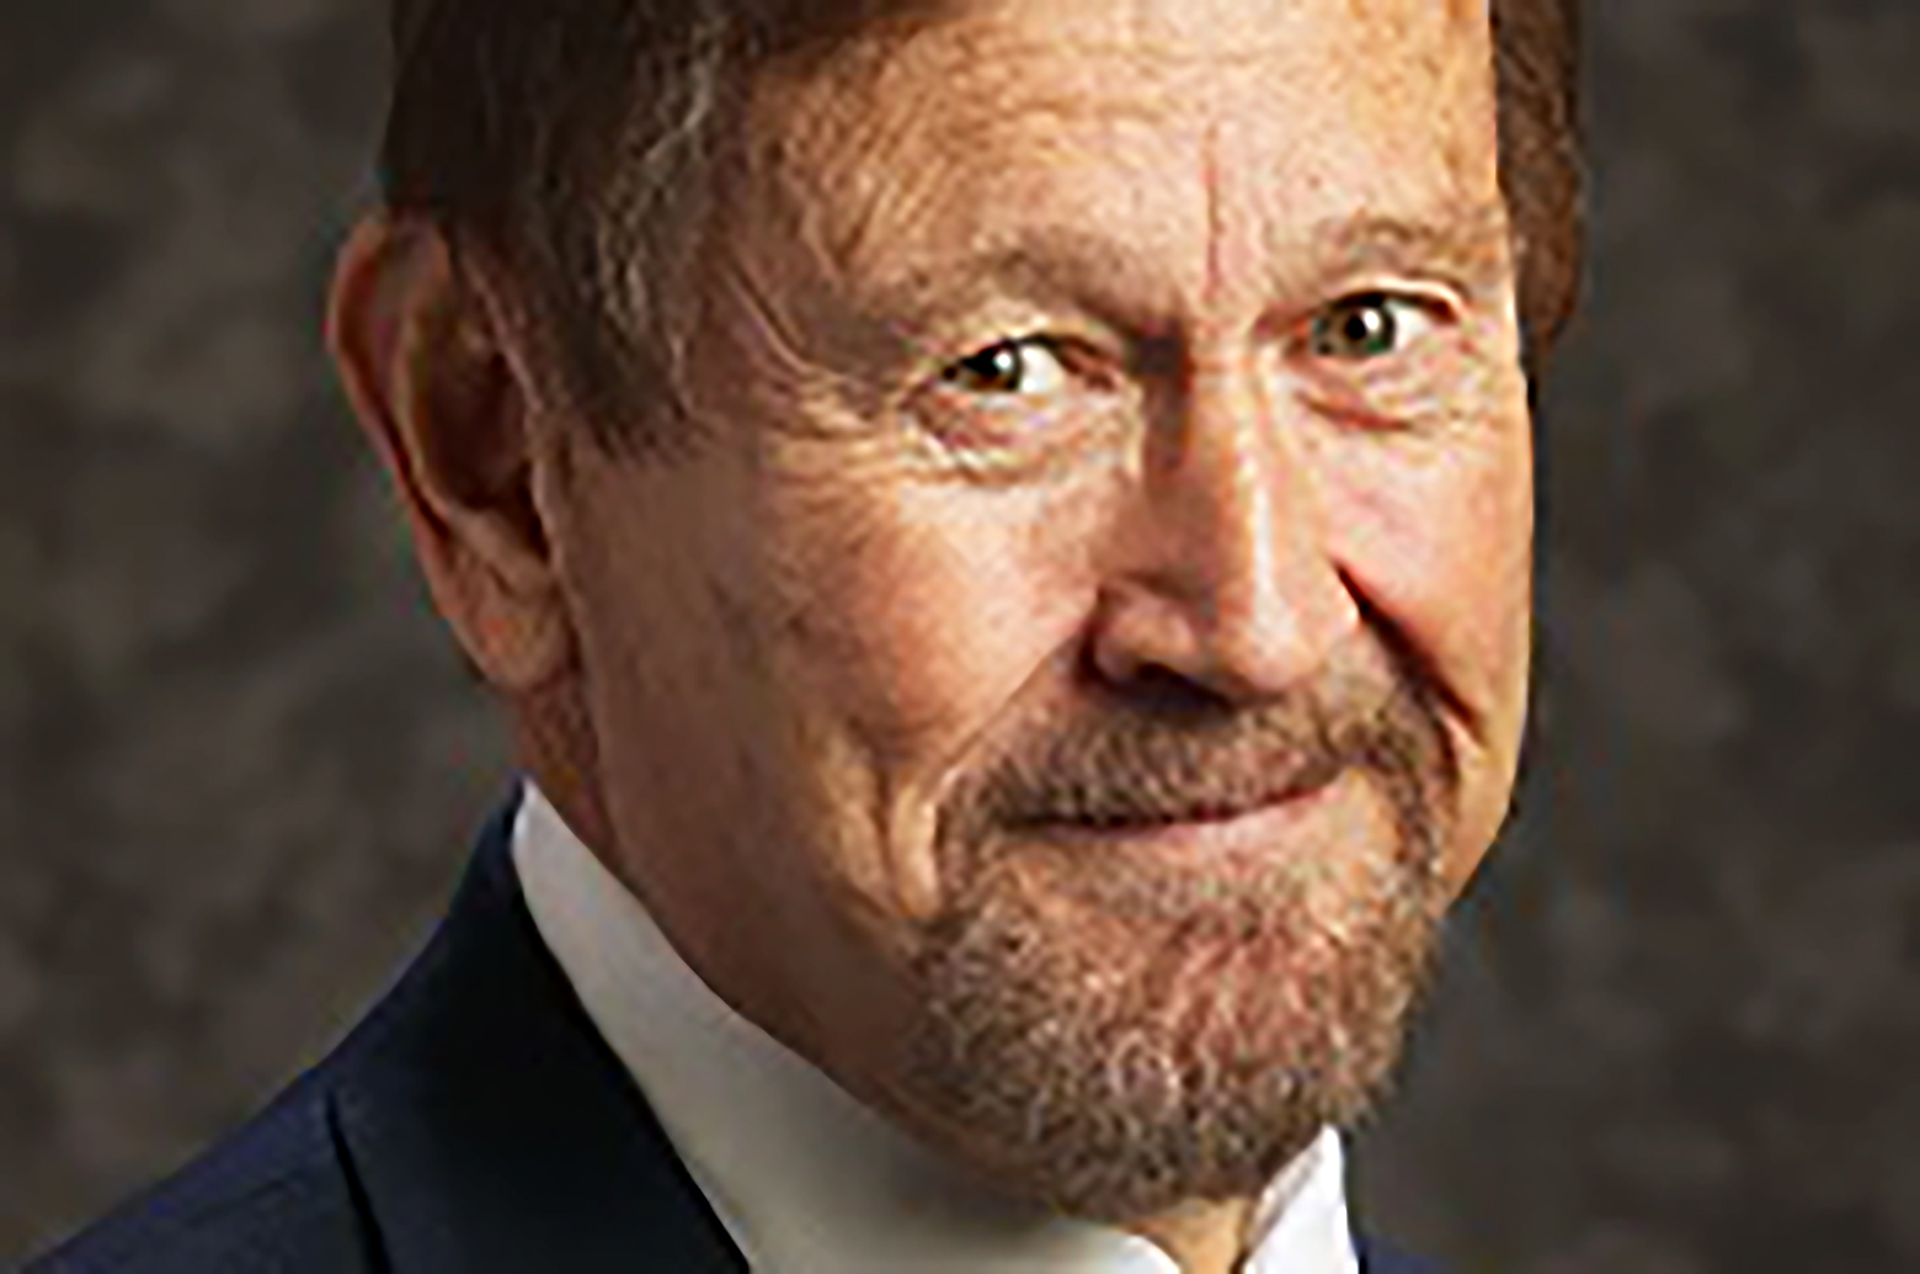 Sen. Bud Estes, a Dodge City Republican state senator and former Kansas House member, has died at age 74 following a lengthy illness. (Submitted/Kansas Reflector)